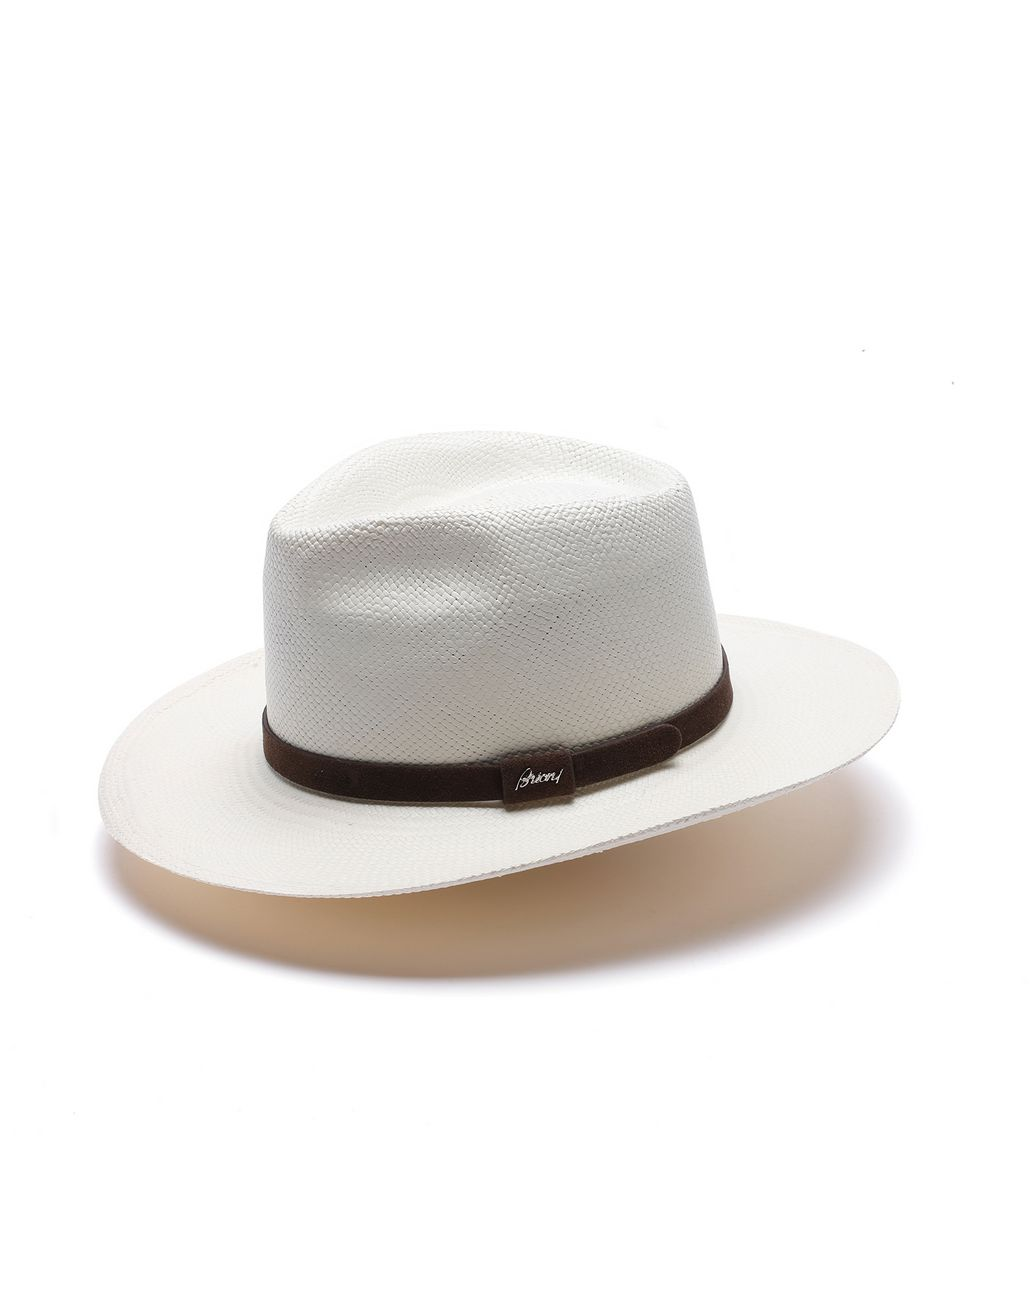 BRIONI White Panama Hat Hats & Gloves Man f